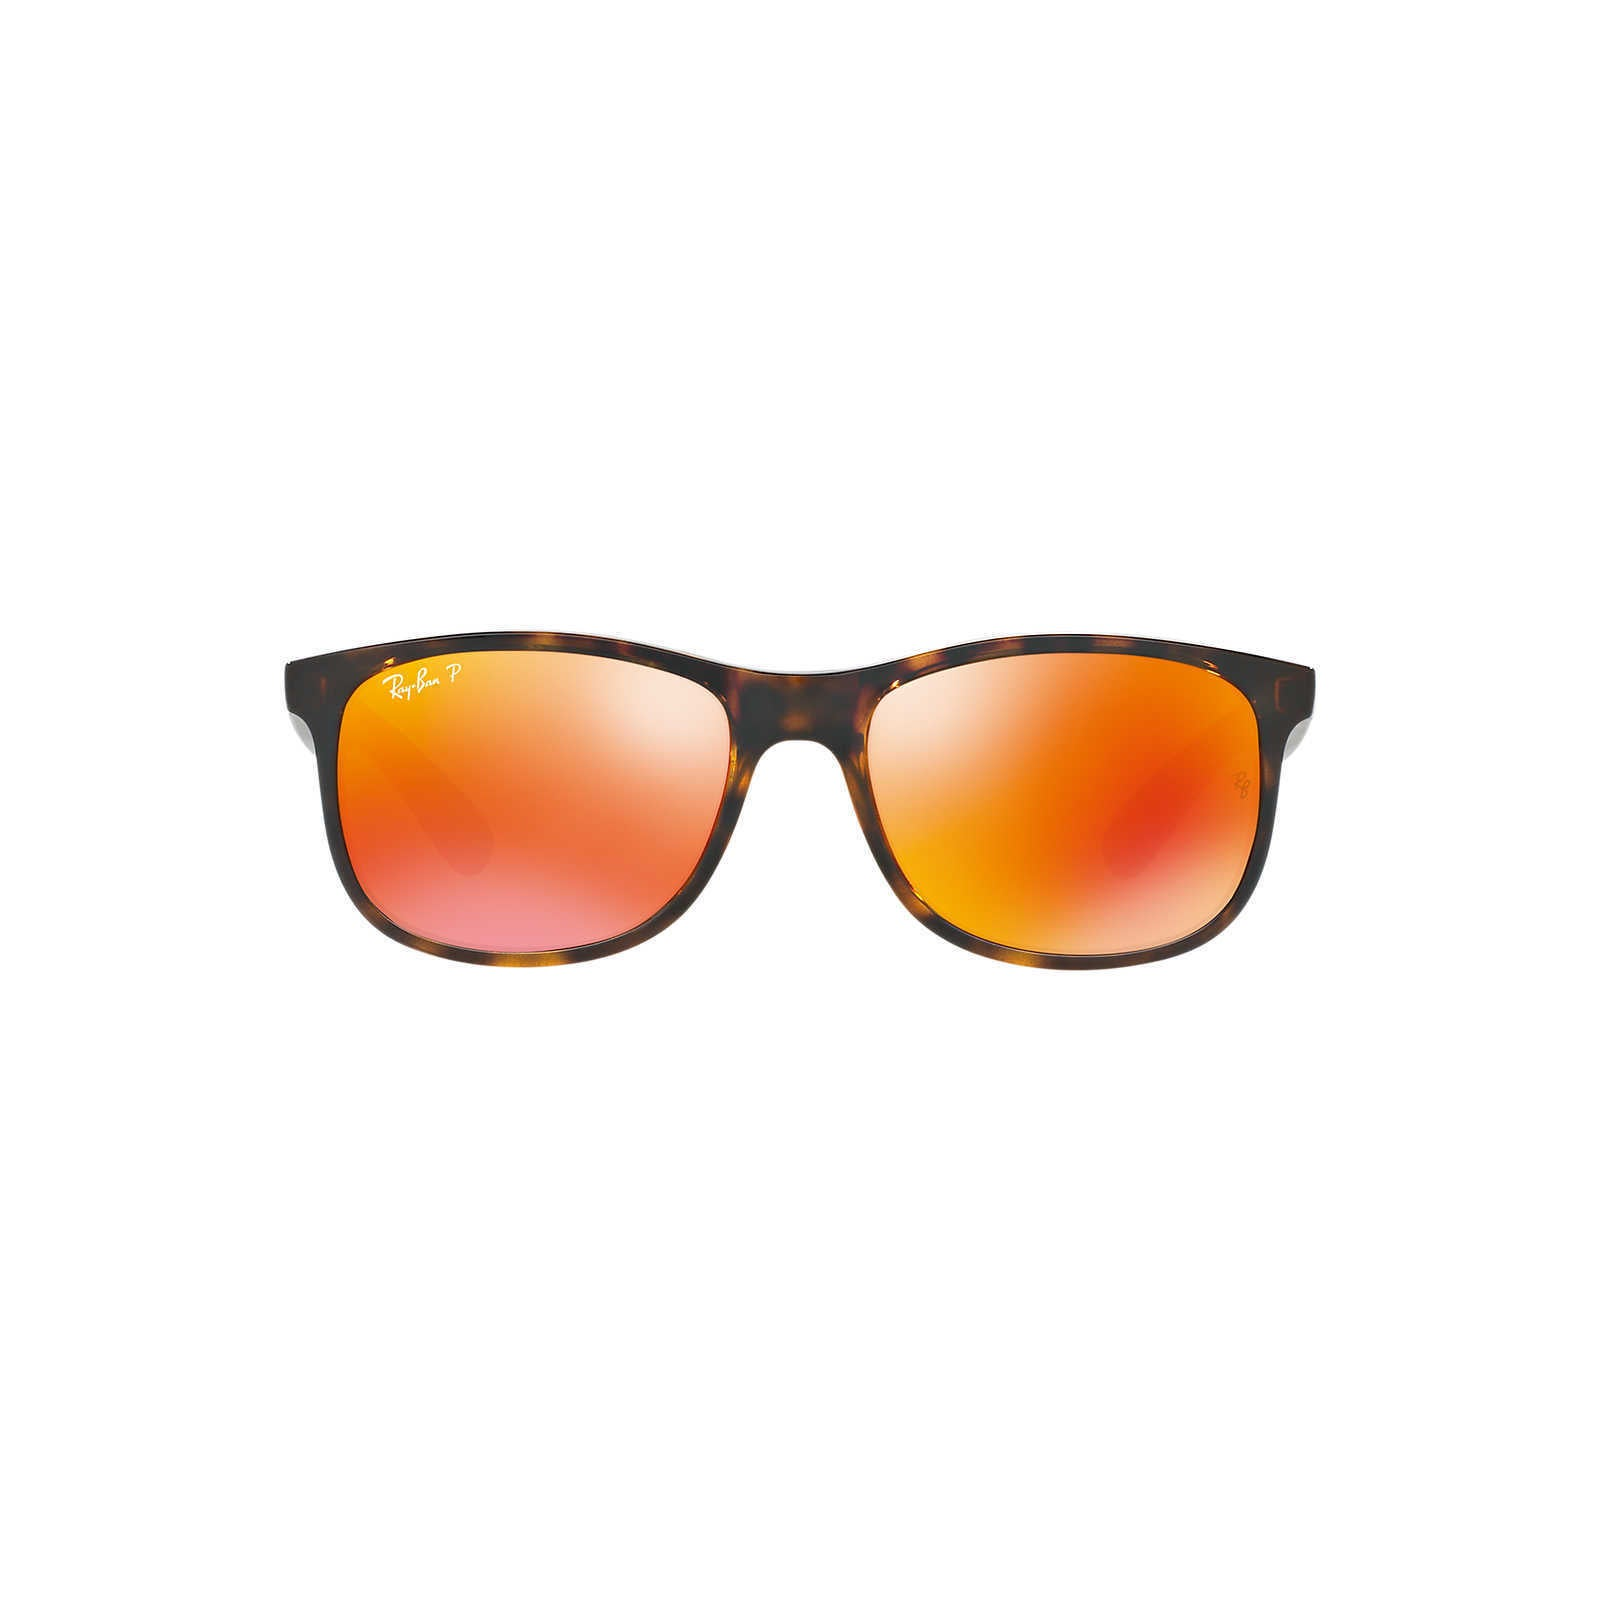 6cda49ba2d Shop Ray-Ban RB4202 710 6S Andy Tortoise Frame Polarized Orange Flash 55mm  Lens Sunglasses - Free Shipping Today - Overstock - 14341458